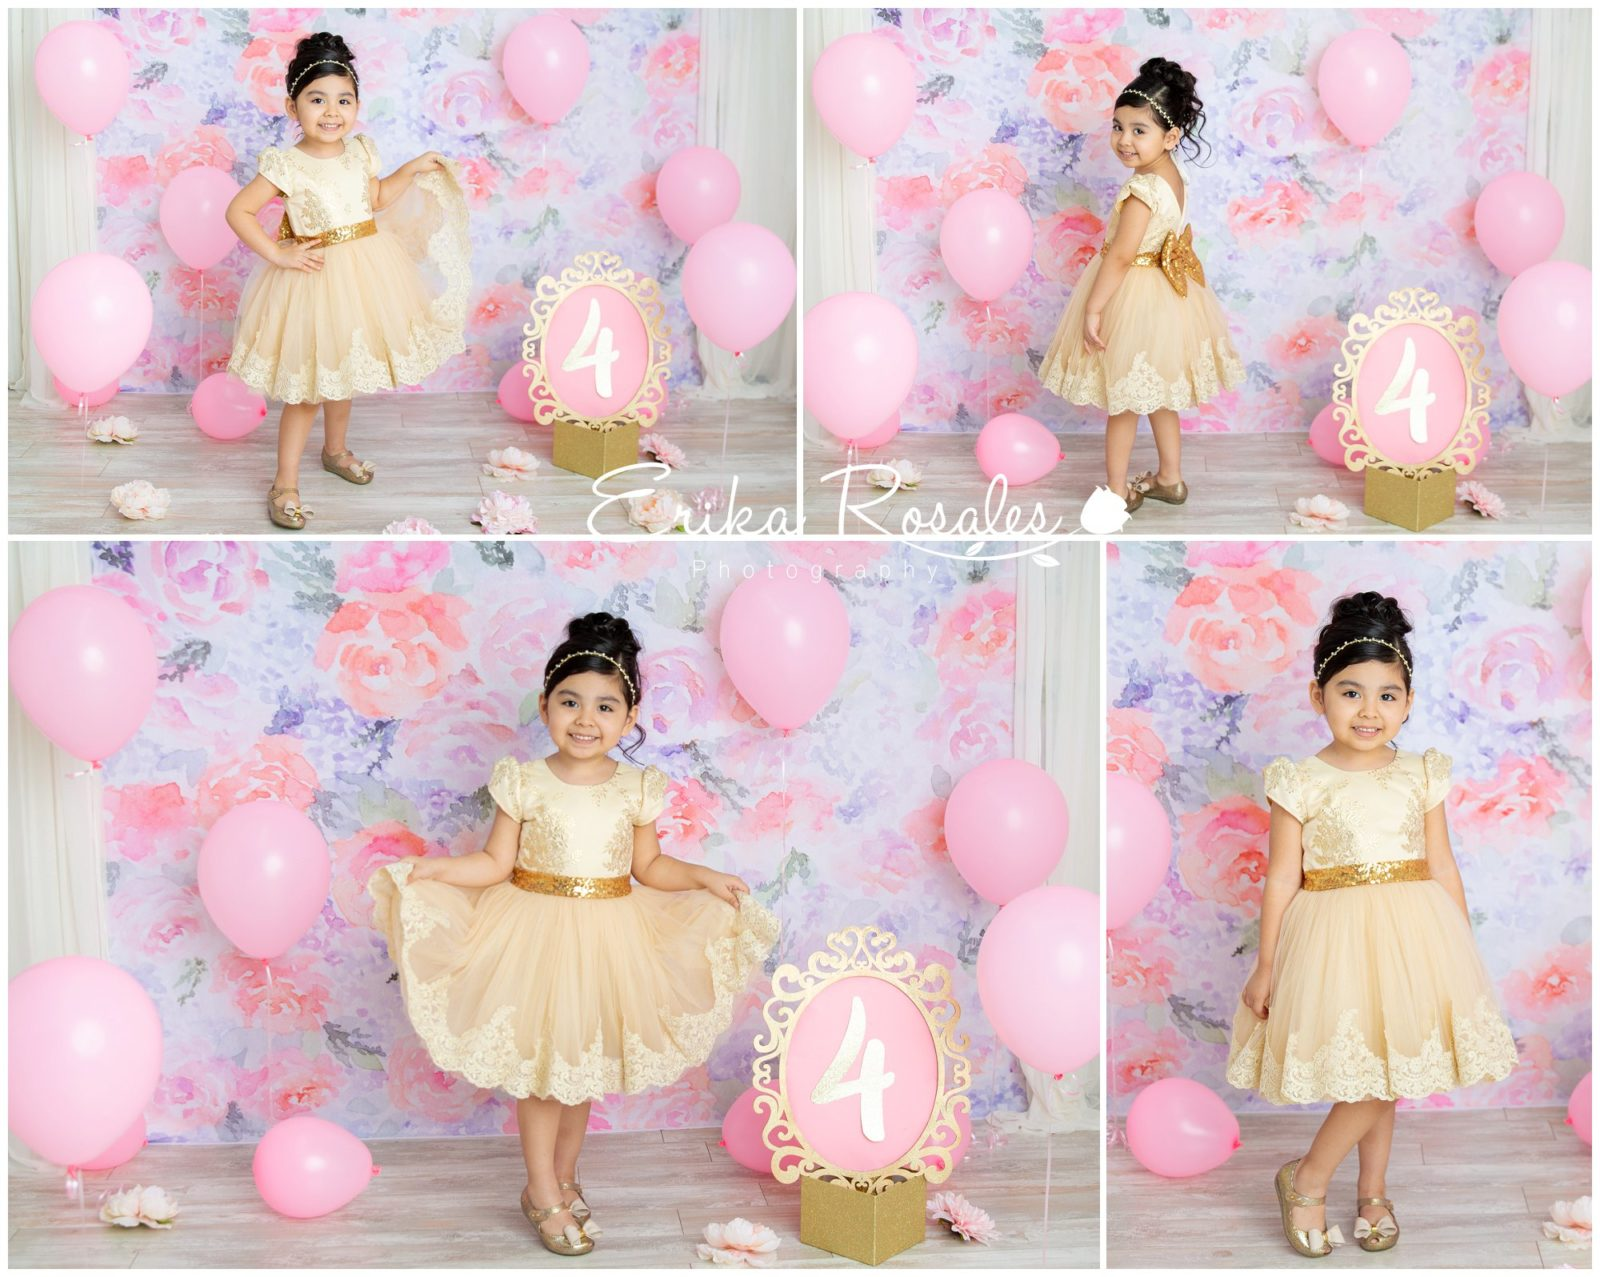 This entry was posted in children photo session and tagged baby girl birthday baby girl photo session baby girl studio photo session baby paris theme